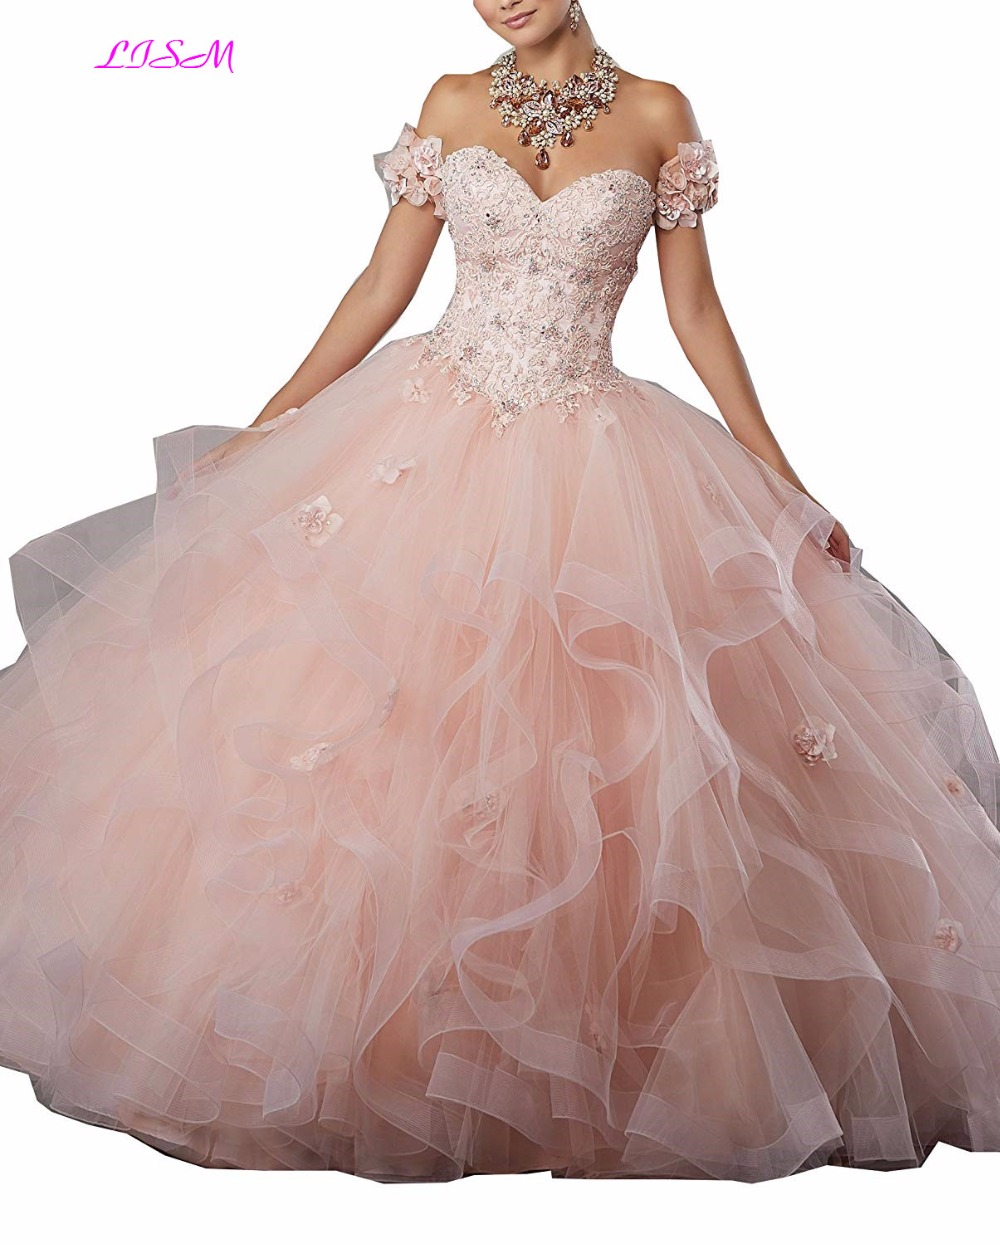 Angelsbridep Sparkly Rhinestone Quinceanera Dresses 2019 Sexy 15 Party Formal Organza Full Lelngth Plus Size Debutante Gowns Hot Sufficient Supply Quinceanera Dresses